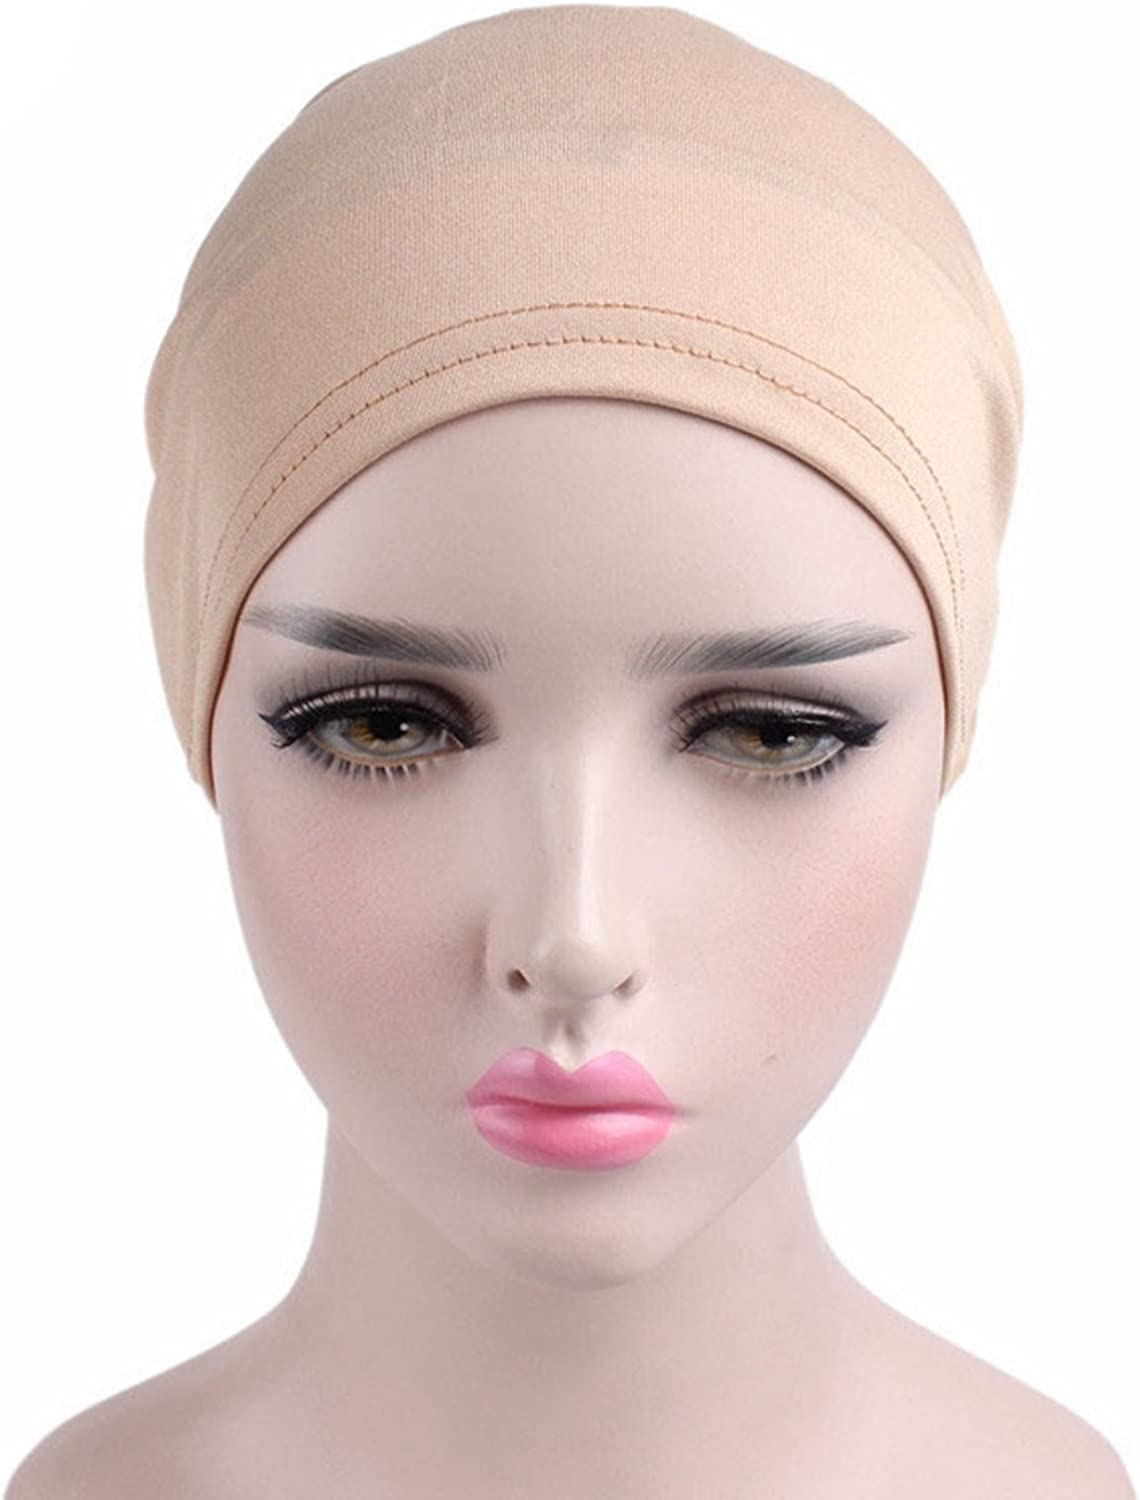 MOMEPE 1 2 3 Pack Women Flower Pleated Head Cover Turban Chemo Hat for Cancer Patient